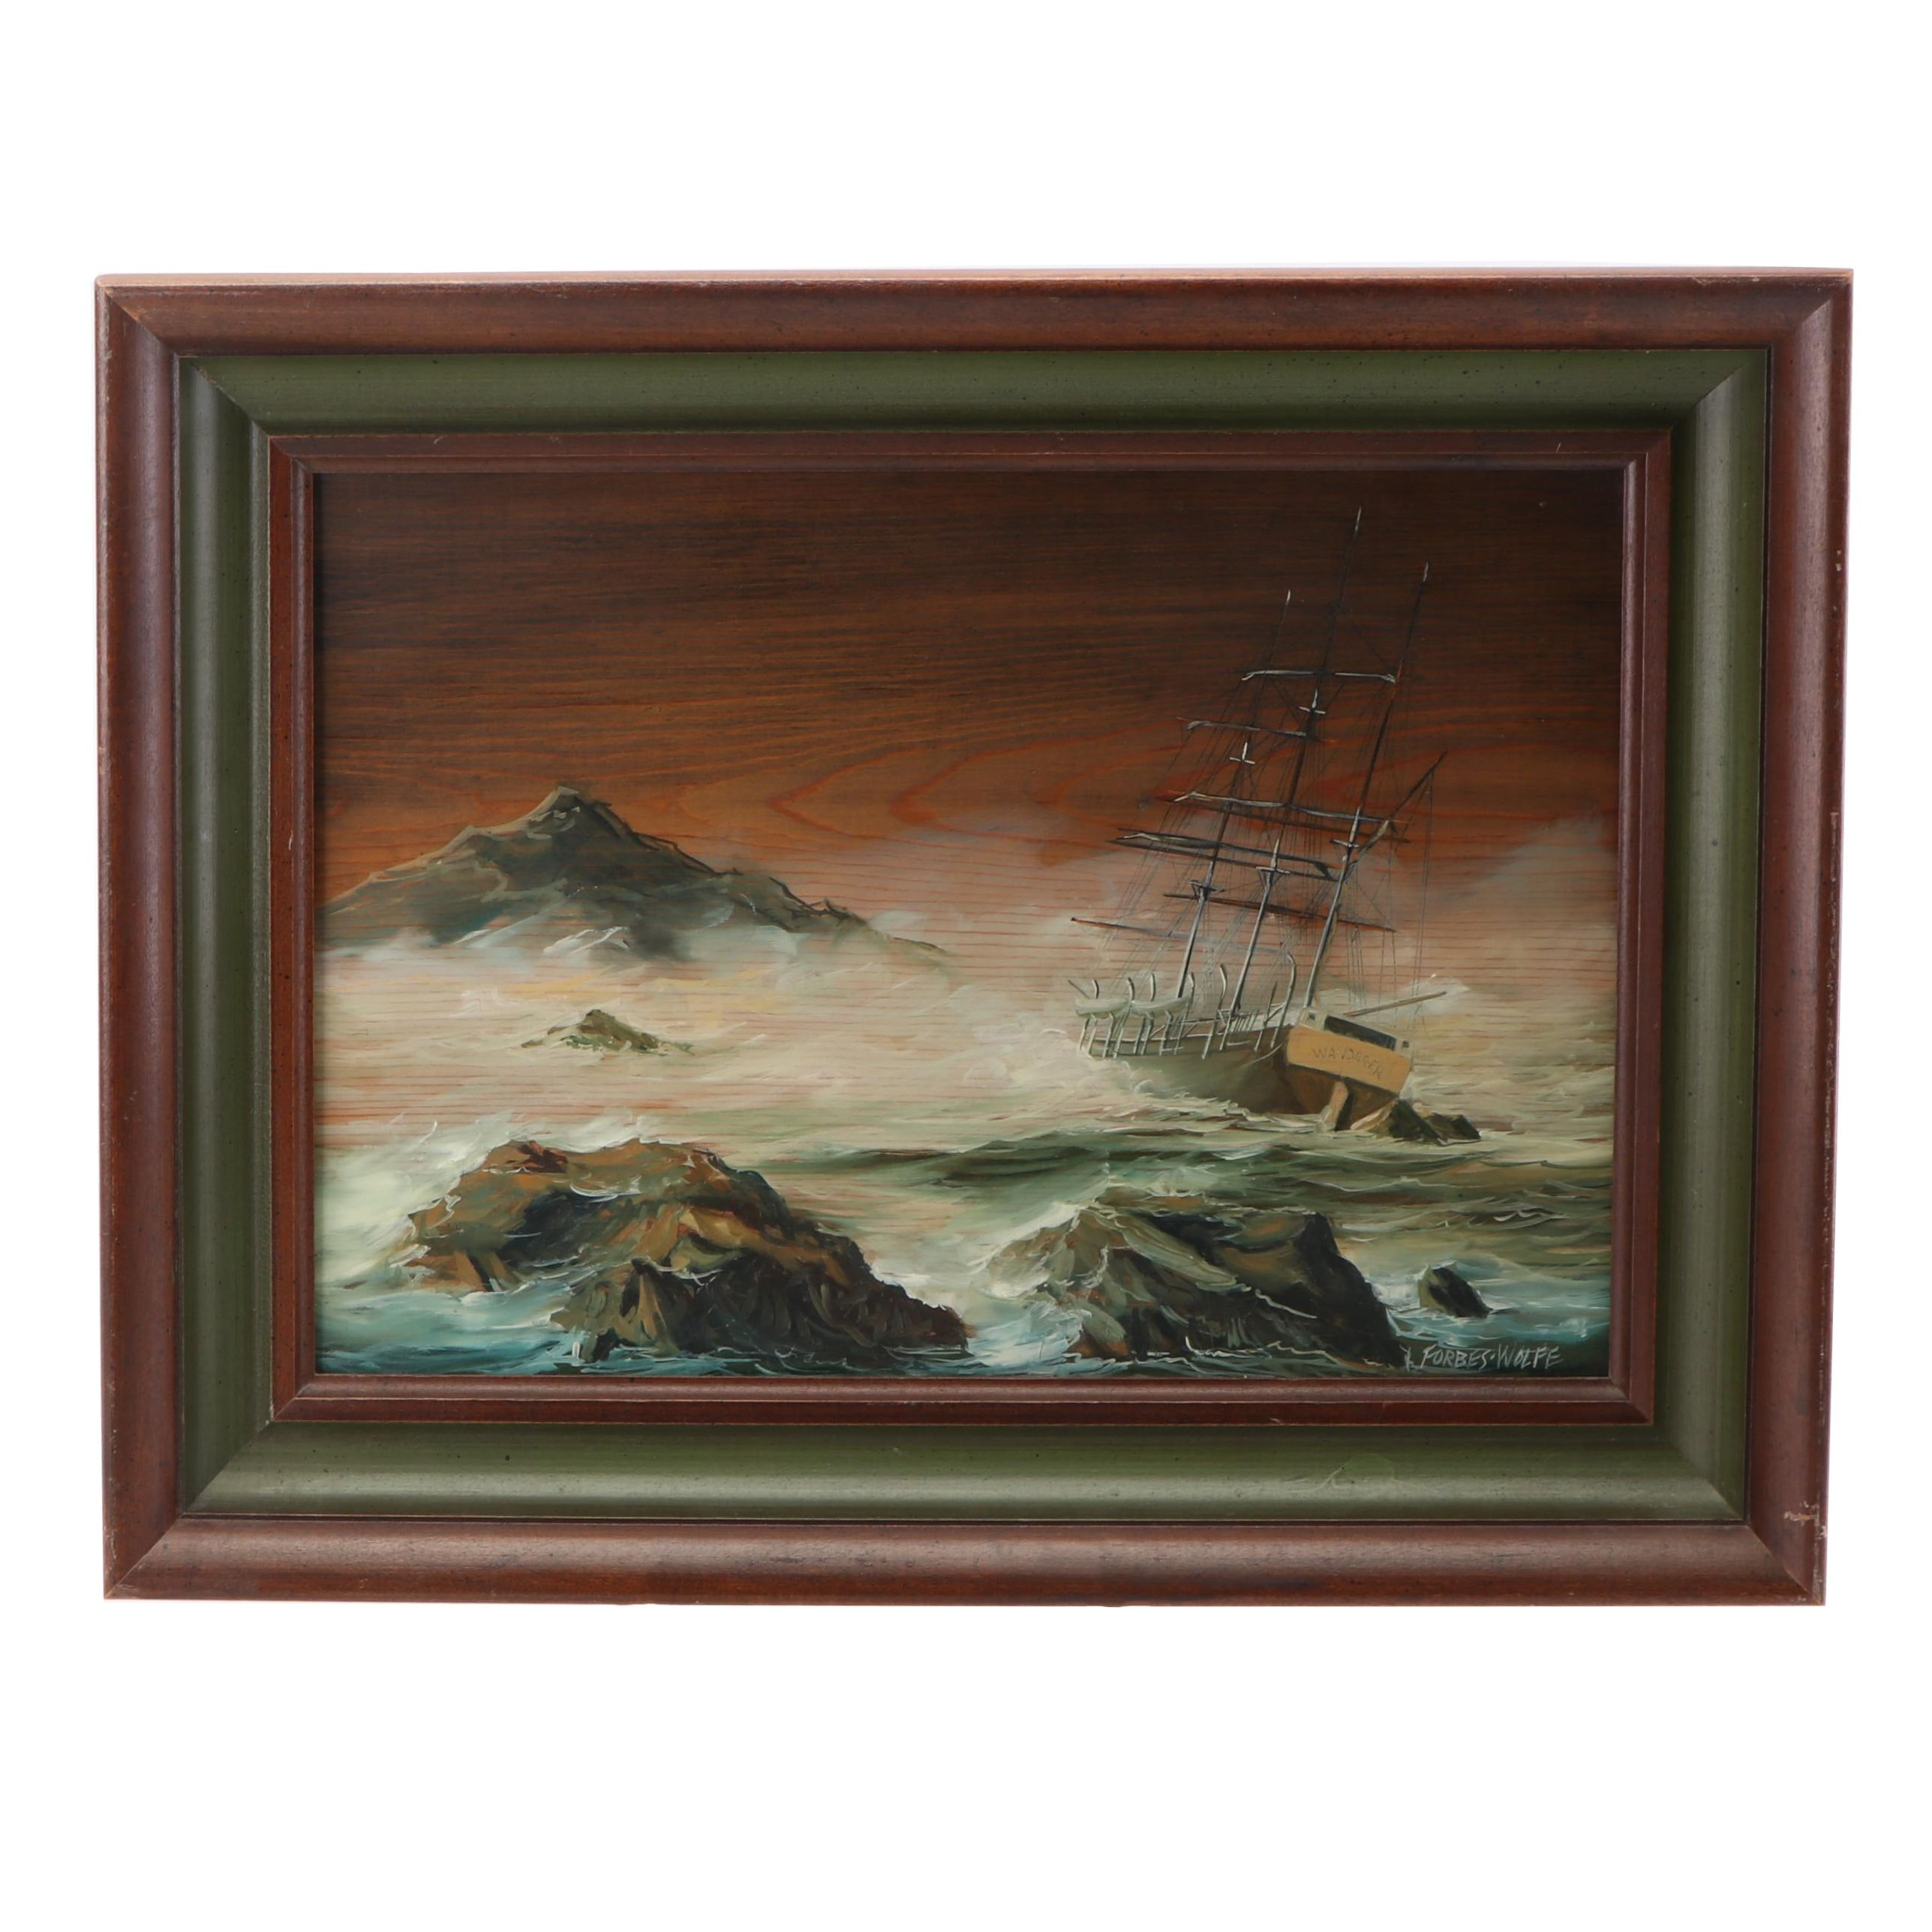 Lawrence Forbes Wolf Seascape Oil Painting